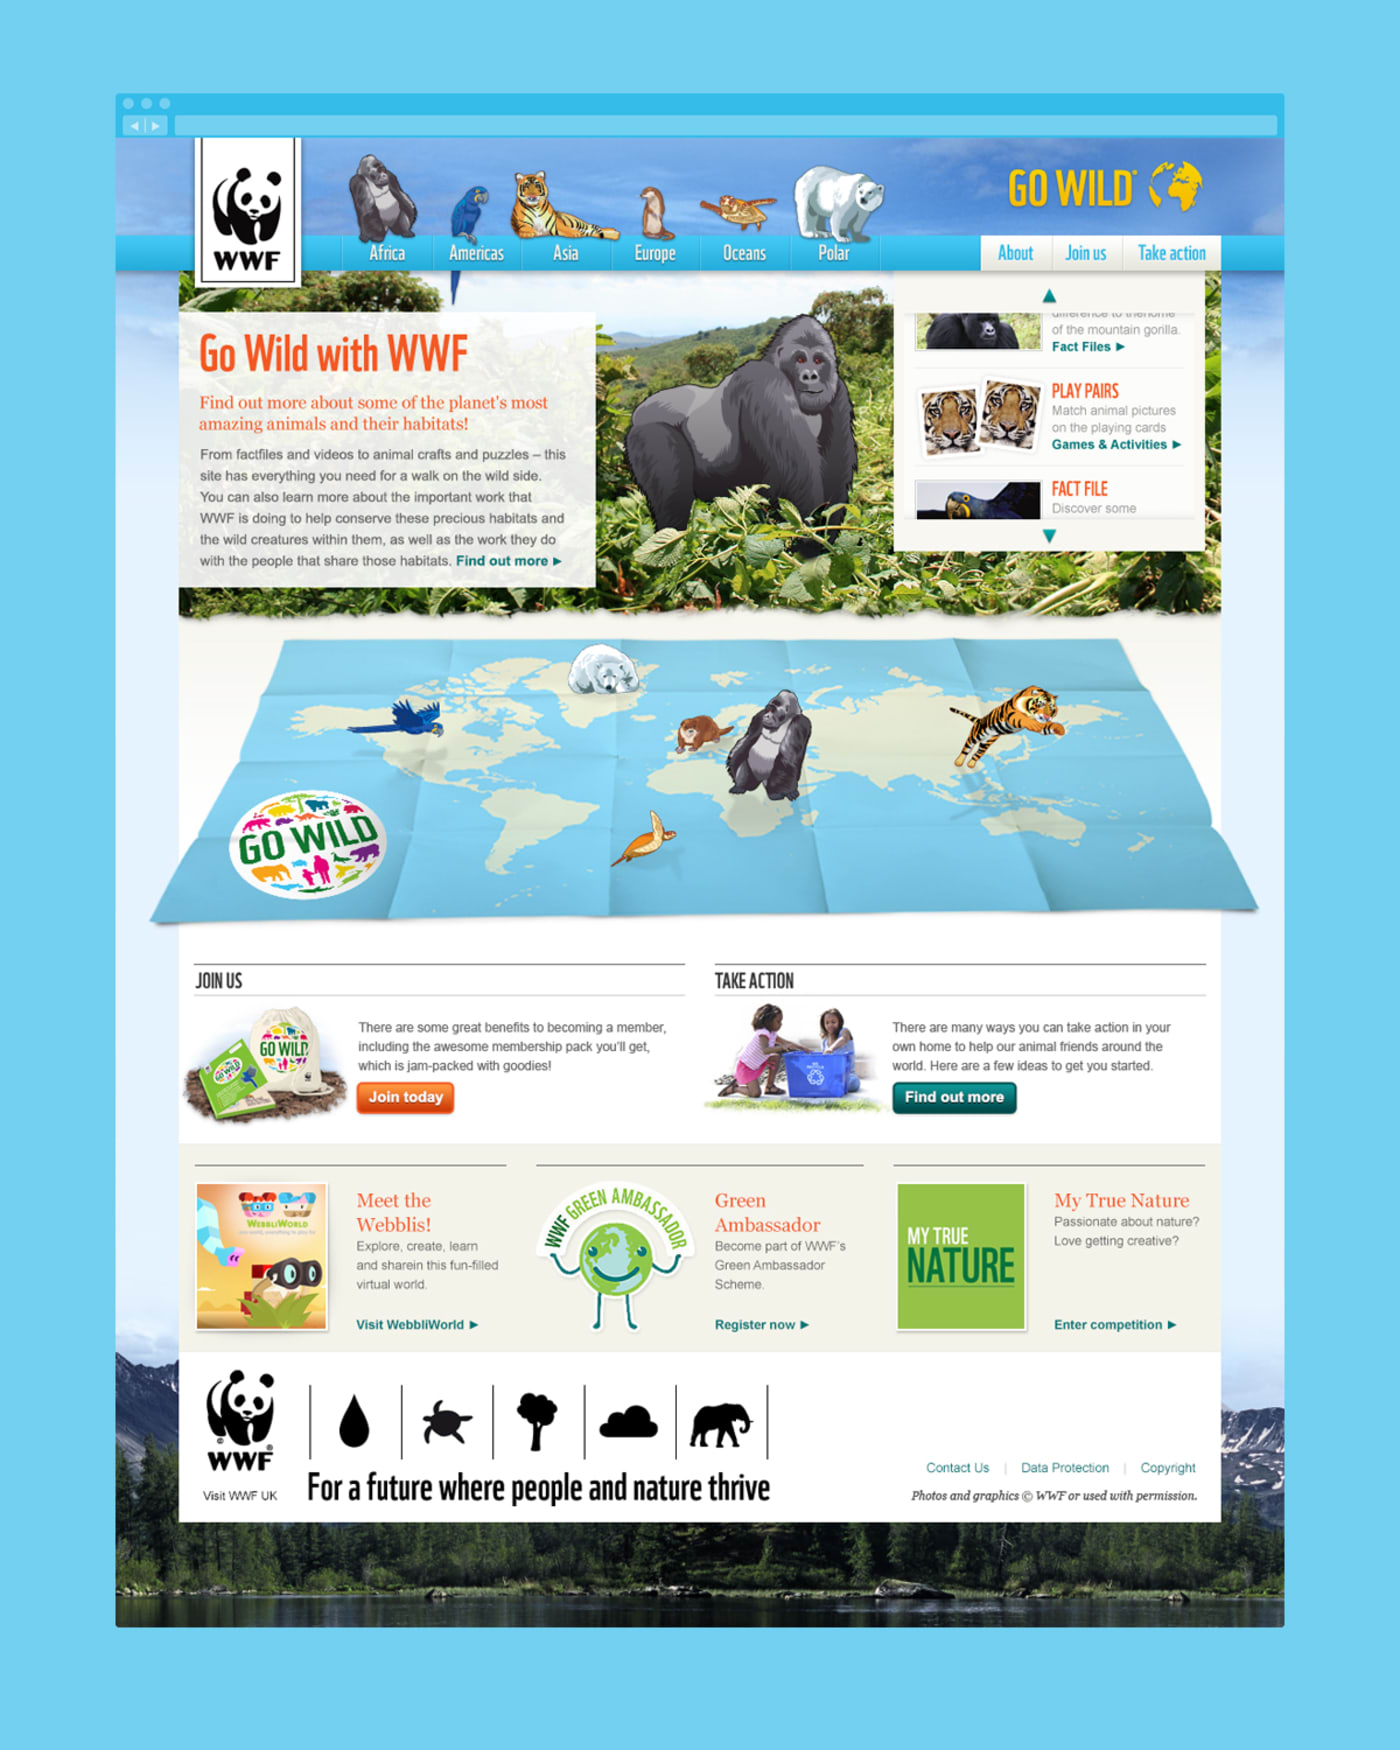 A full screenshot of the 'WWF – Go Wild' home screen.